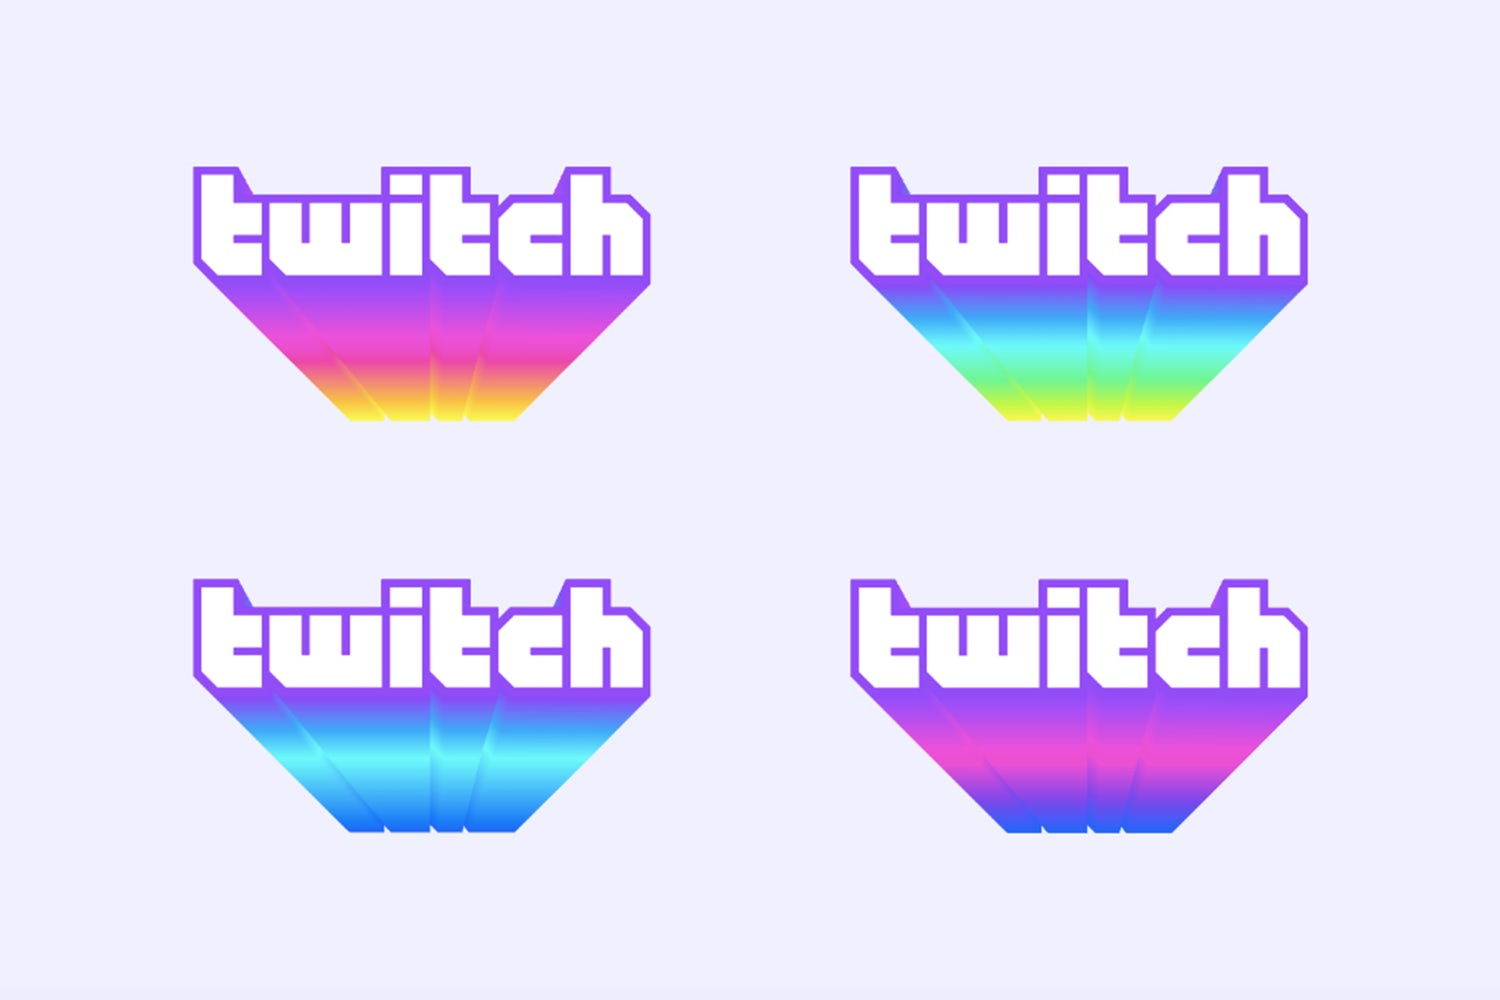 twitch redesign gradients colors